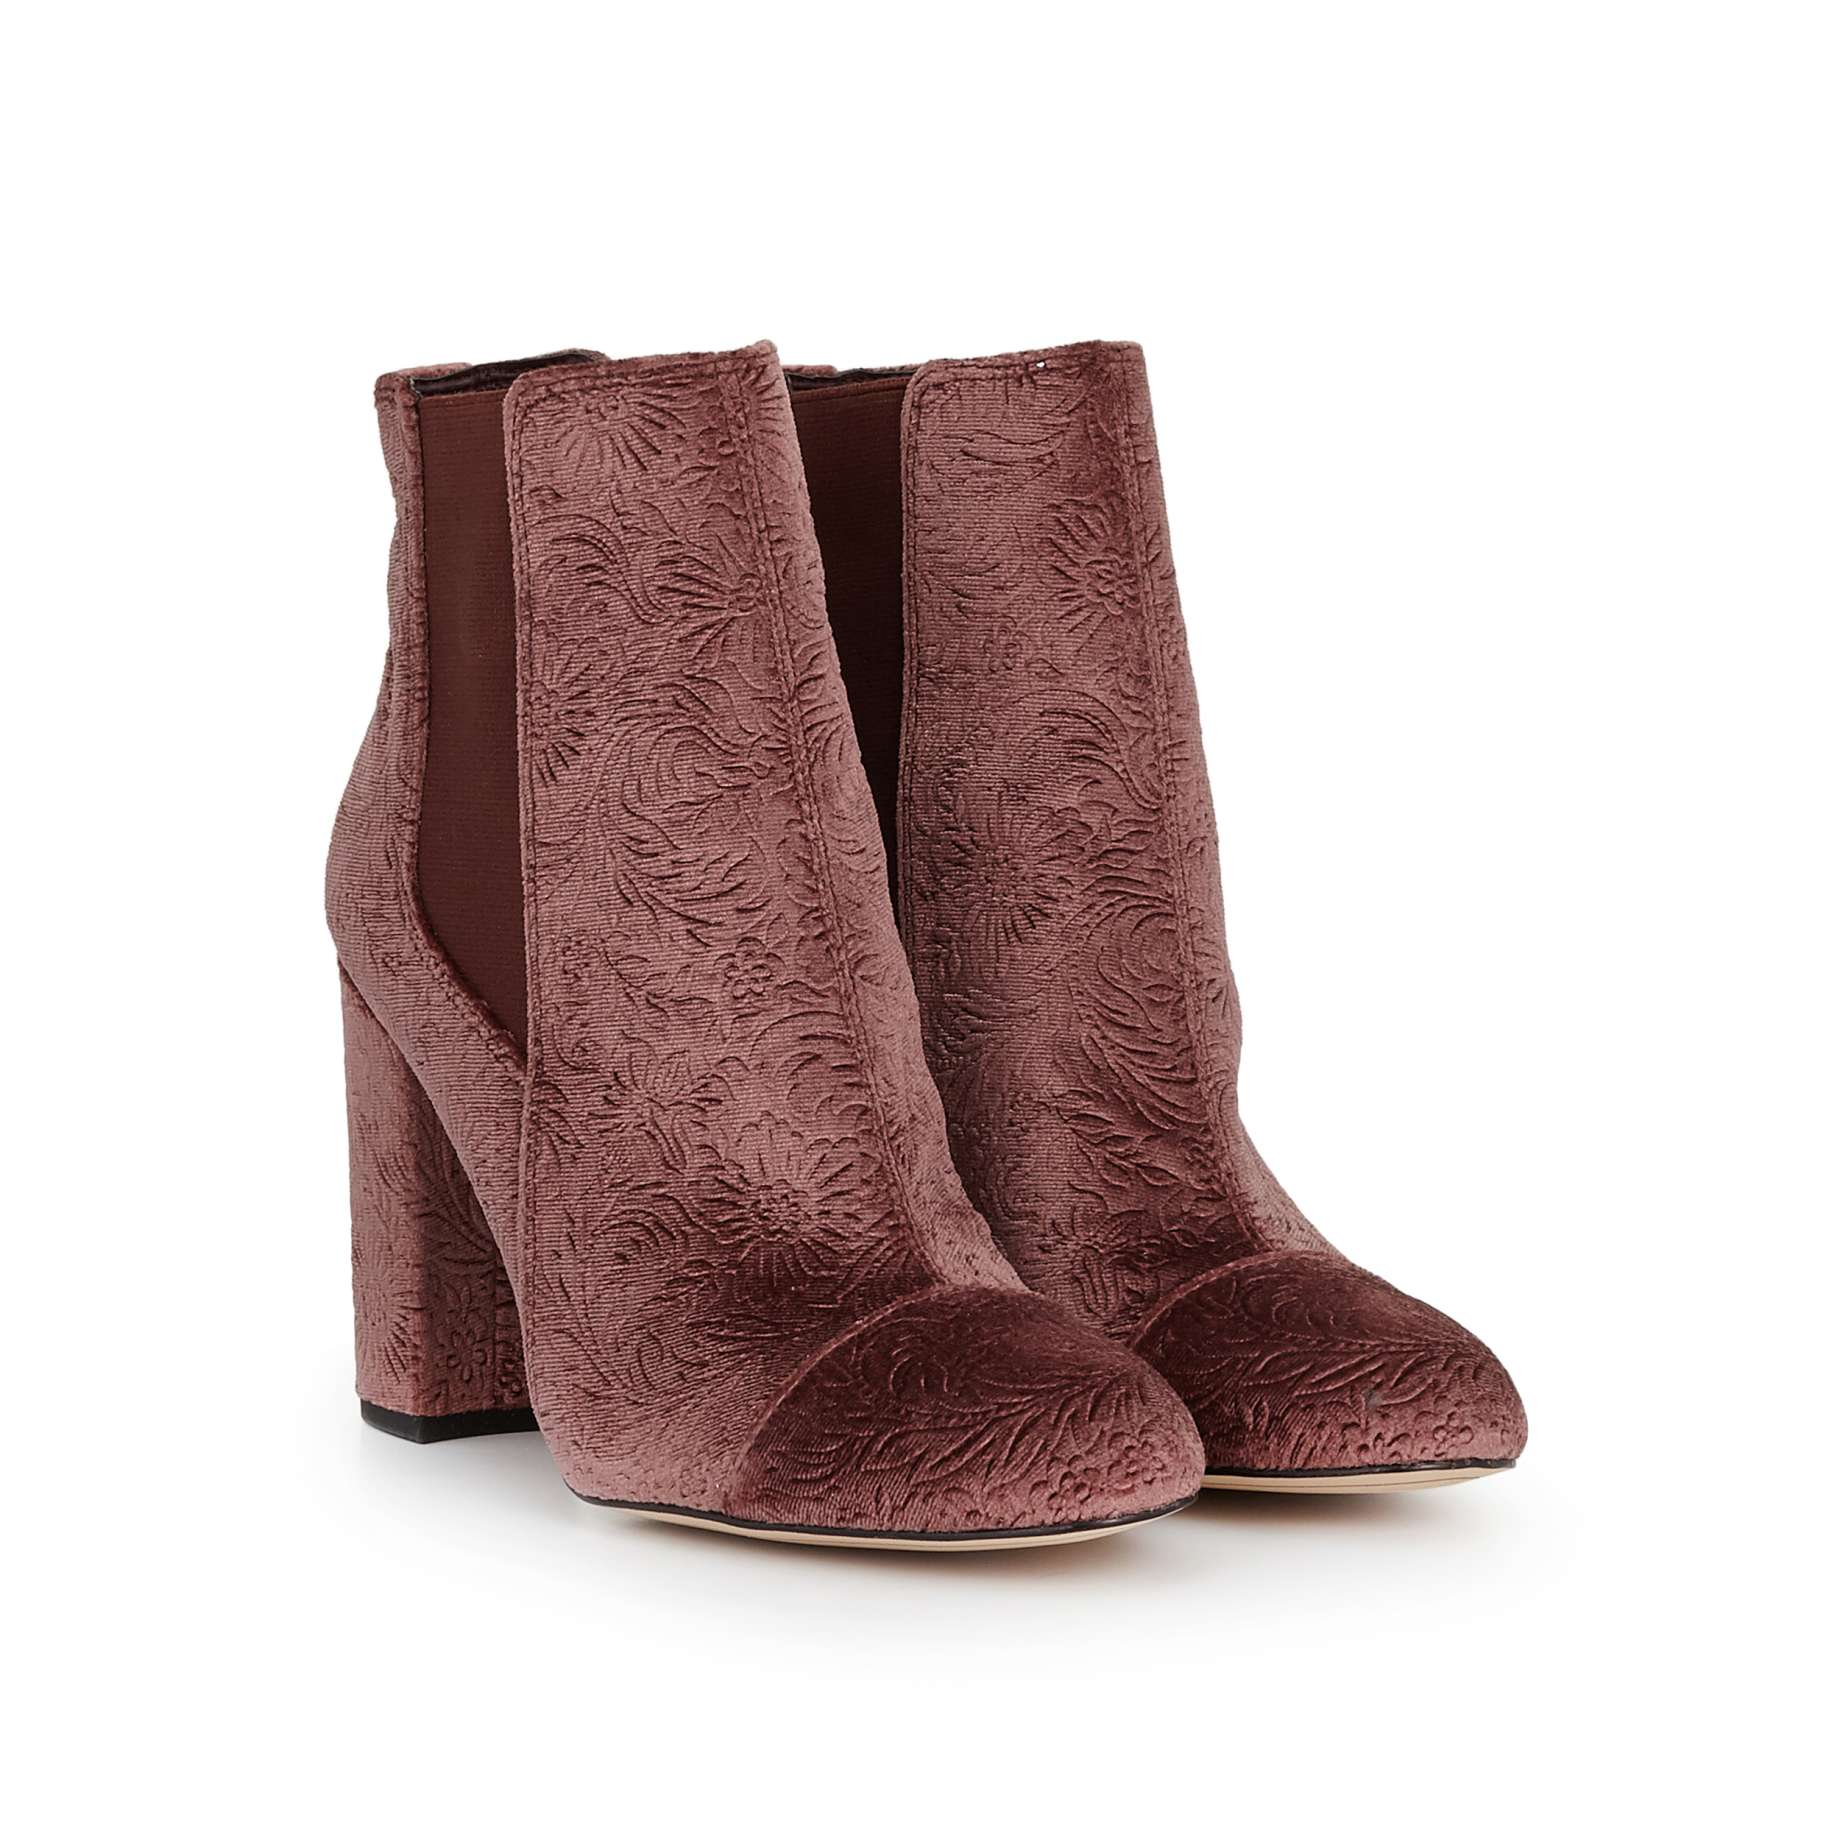 Case Ankle Bootie Boots D Island Shoes Chukka Slip On Dark Brown Leather By Sam Edelman View 1